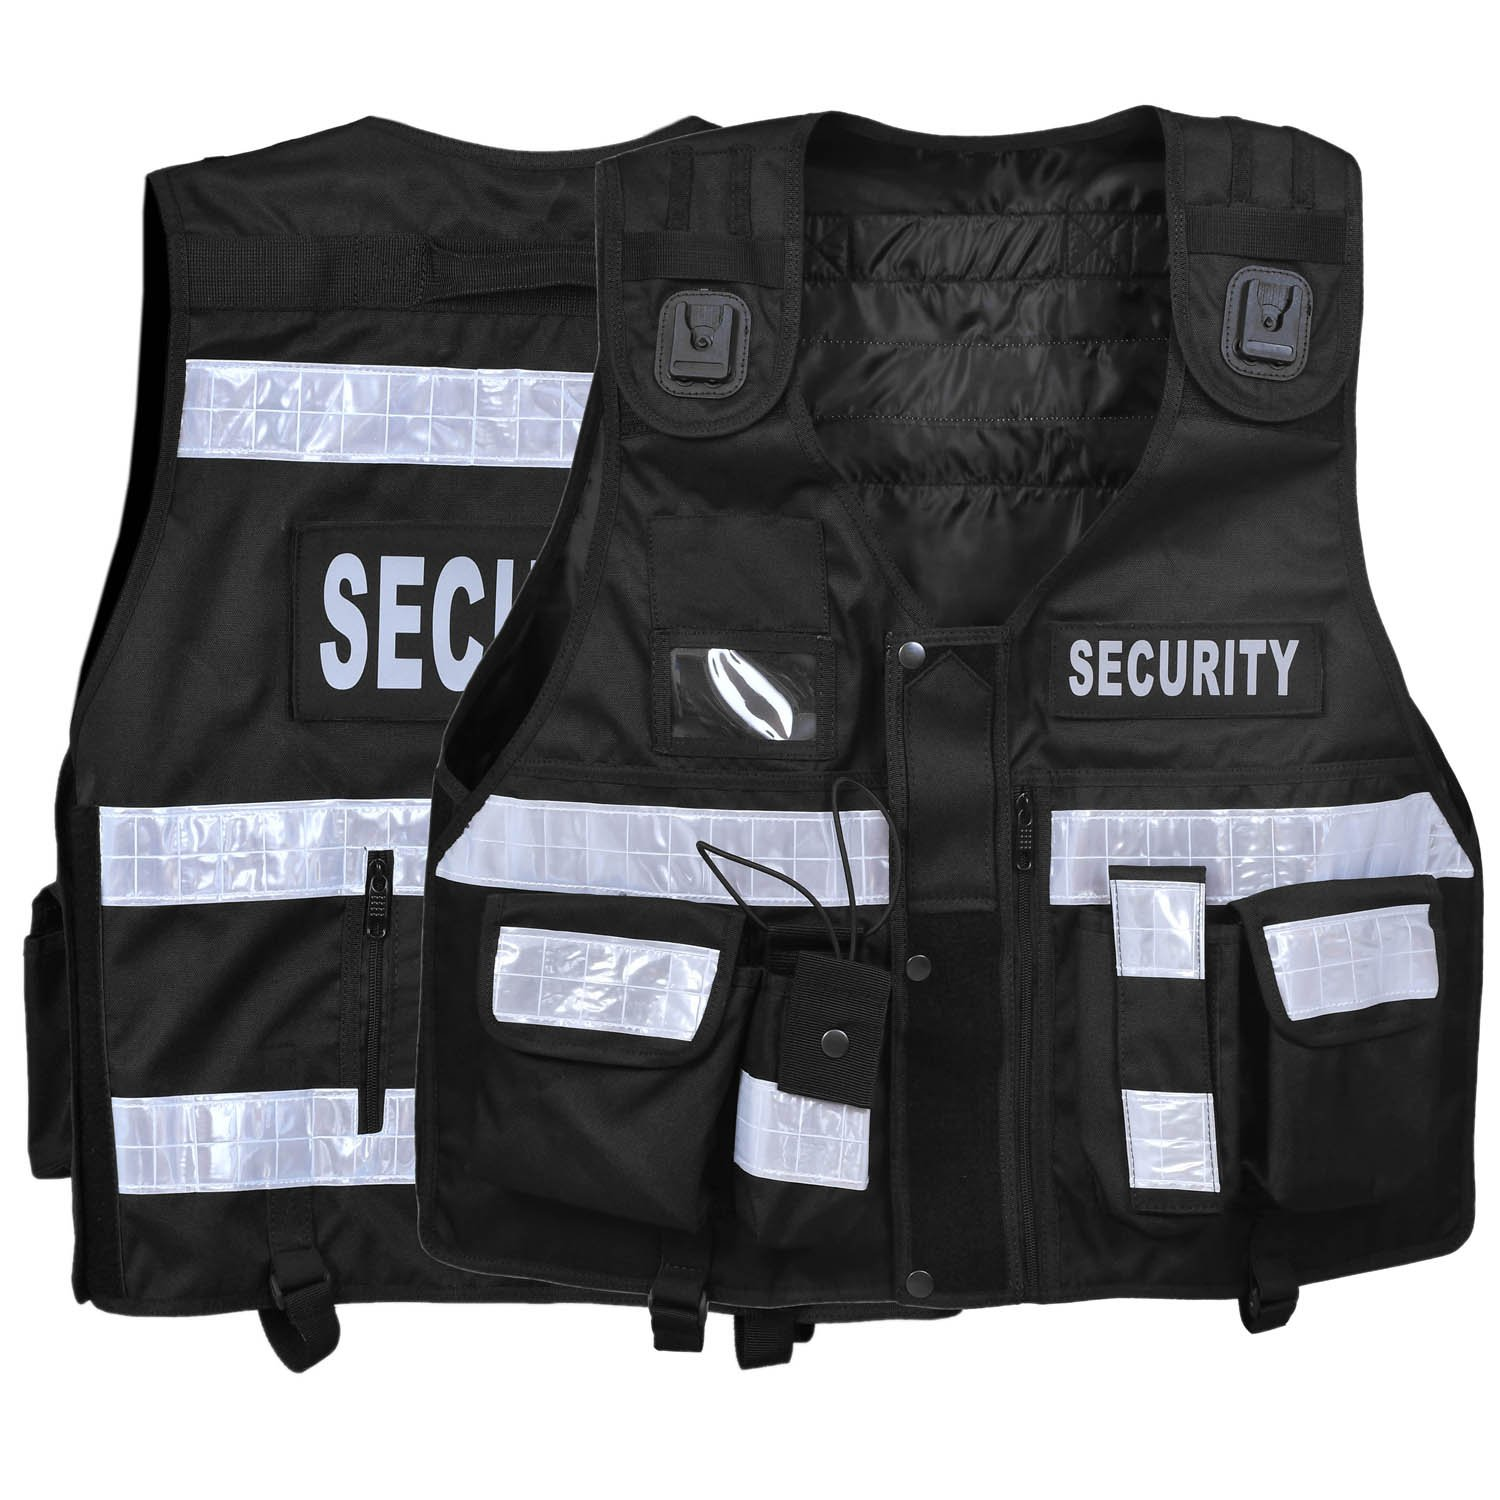 Dog Handler Tac Vest Hi Viz Tactical Vest Security CCTV Enforcement